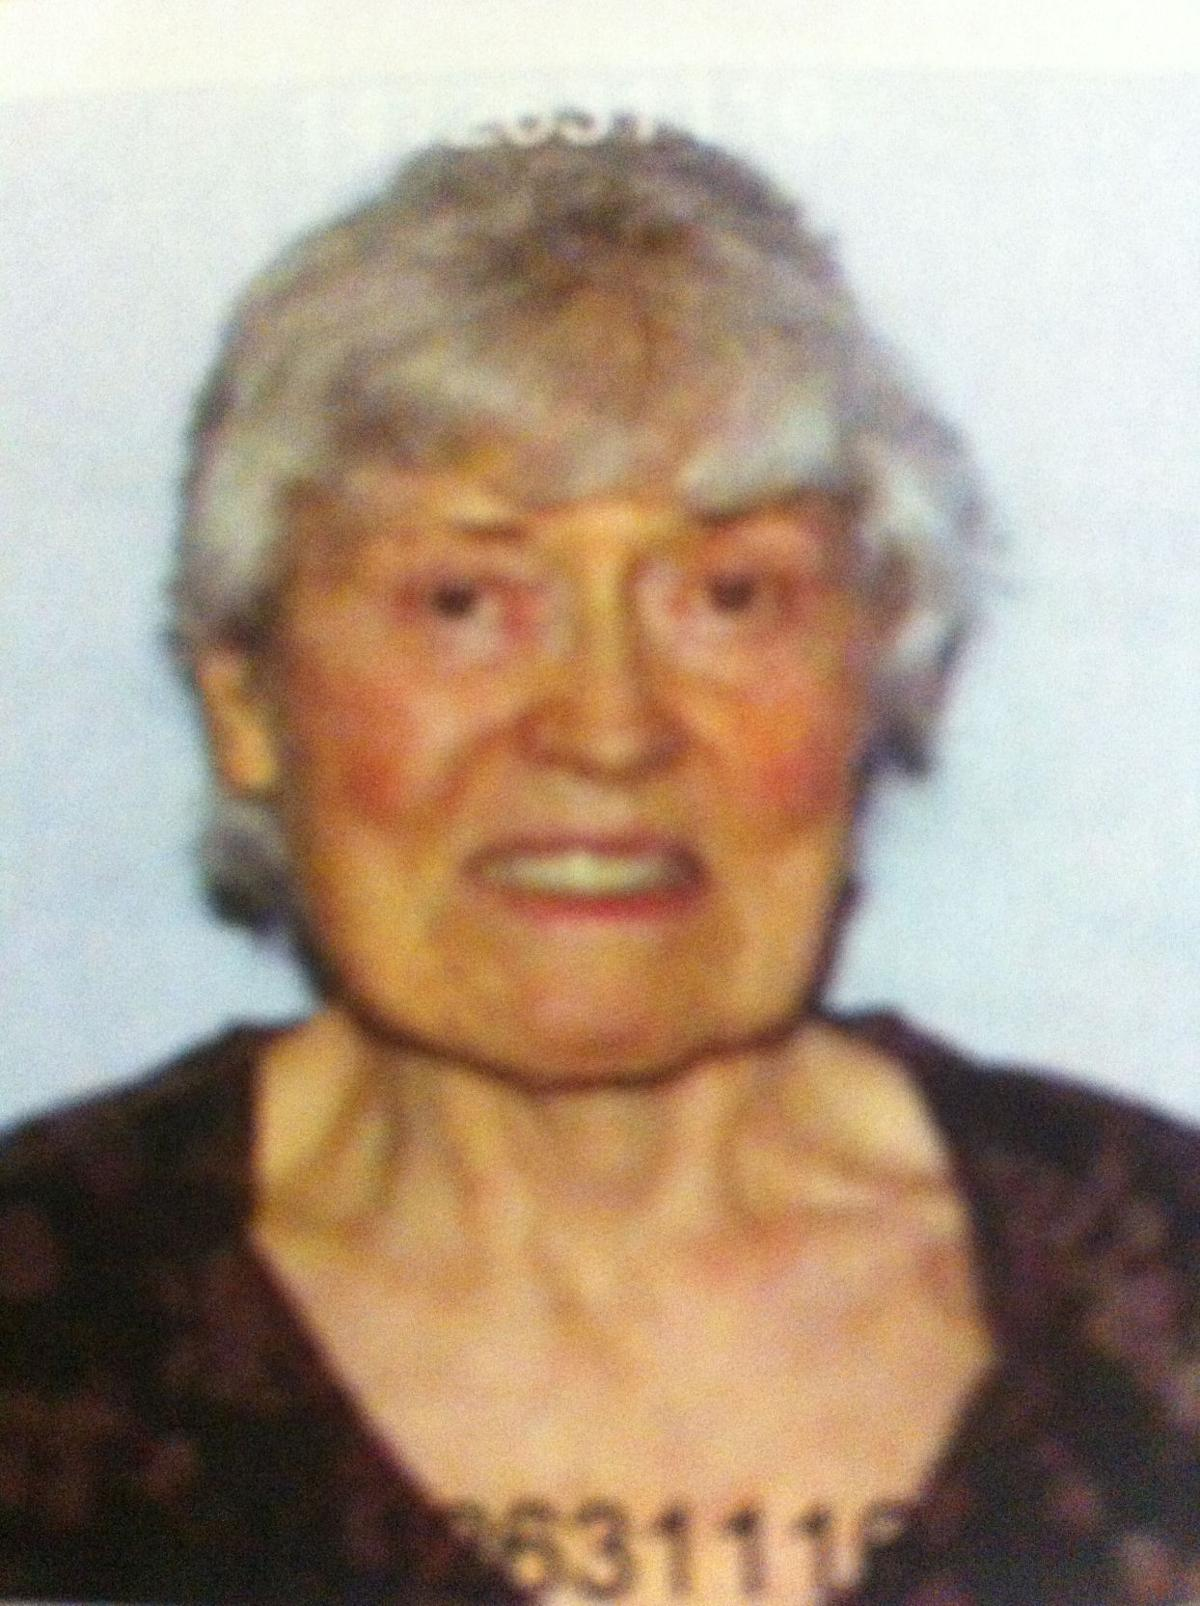 Sheriff's deputies searching for 77-year-old woman reported missing from Hollywood